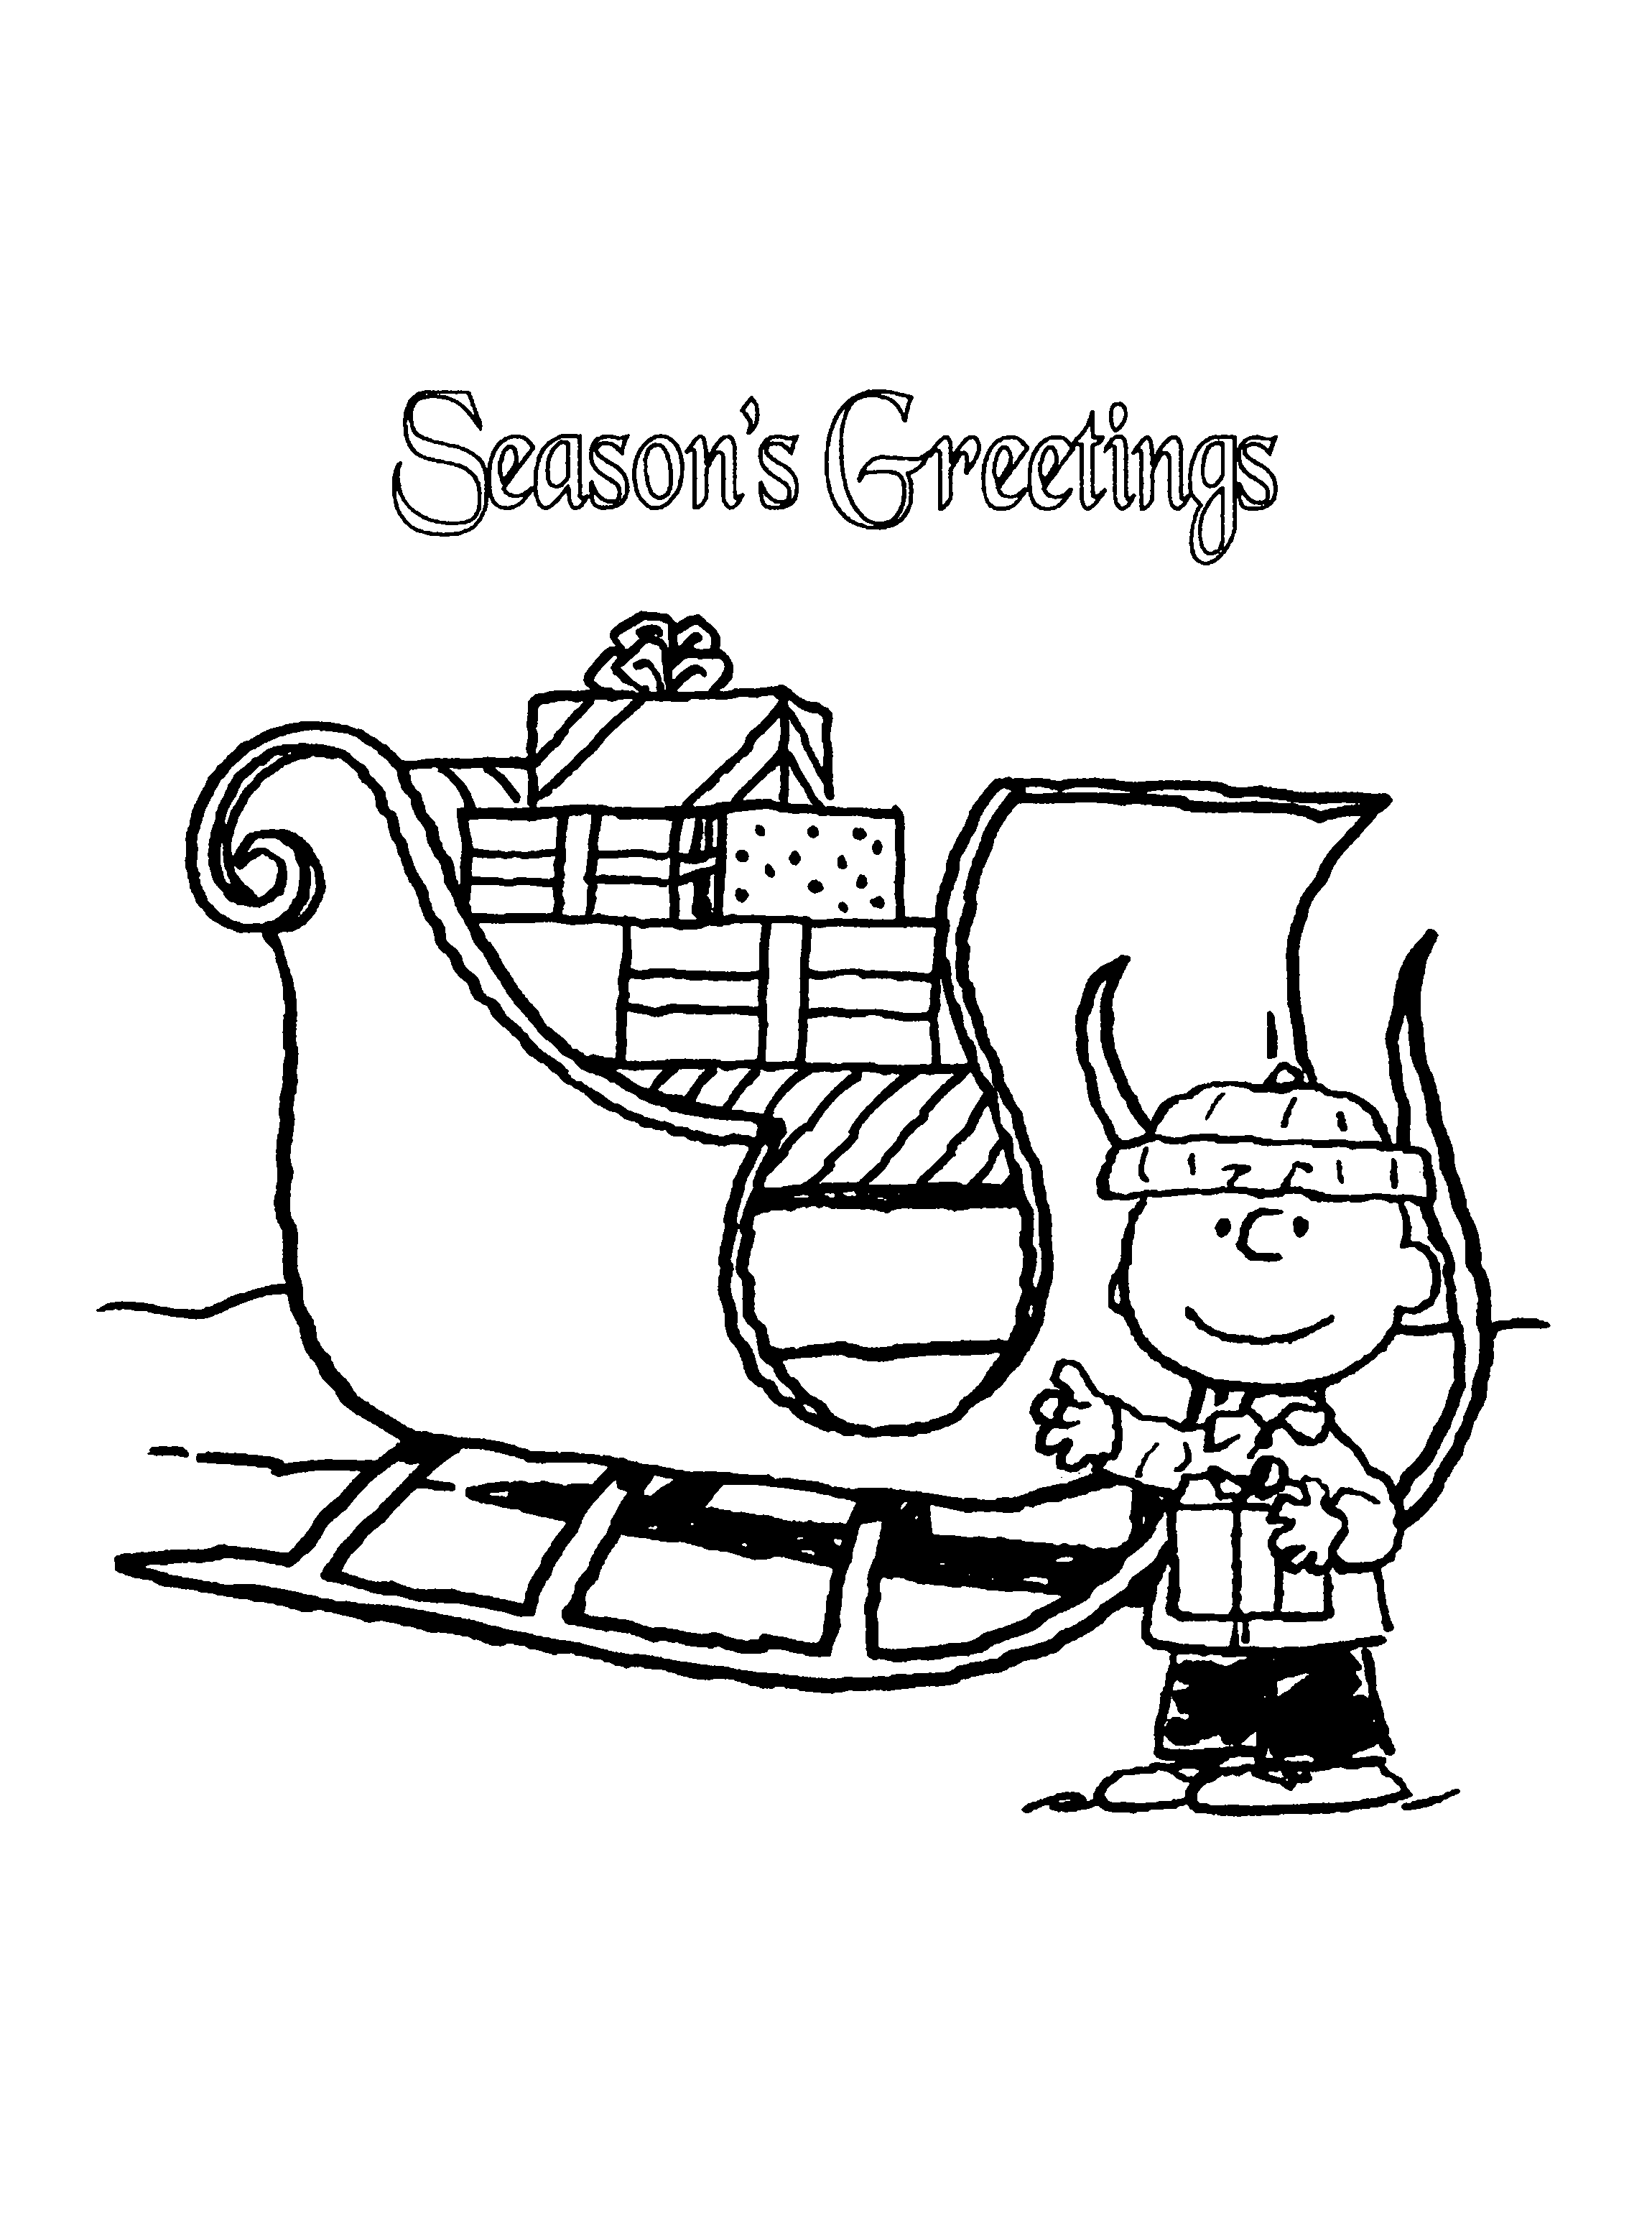 Peanuts xmas coloring and activity book colouring charlie brown